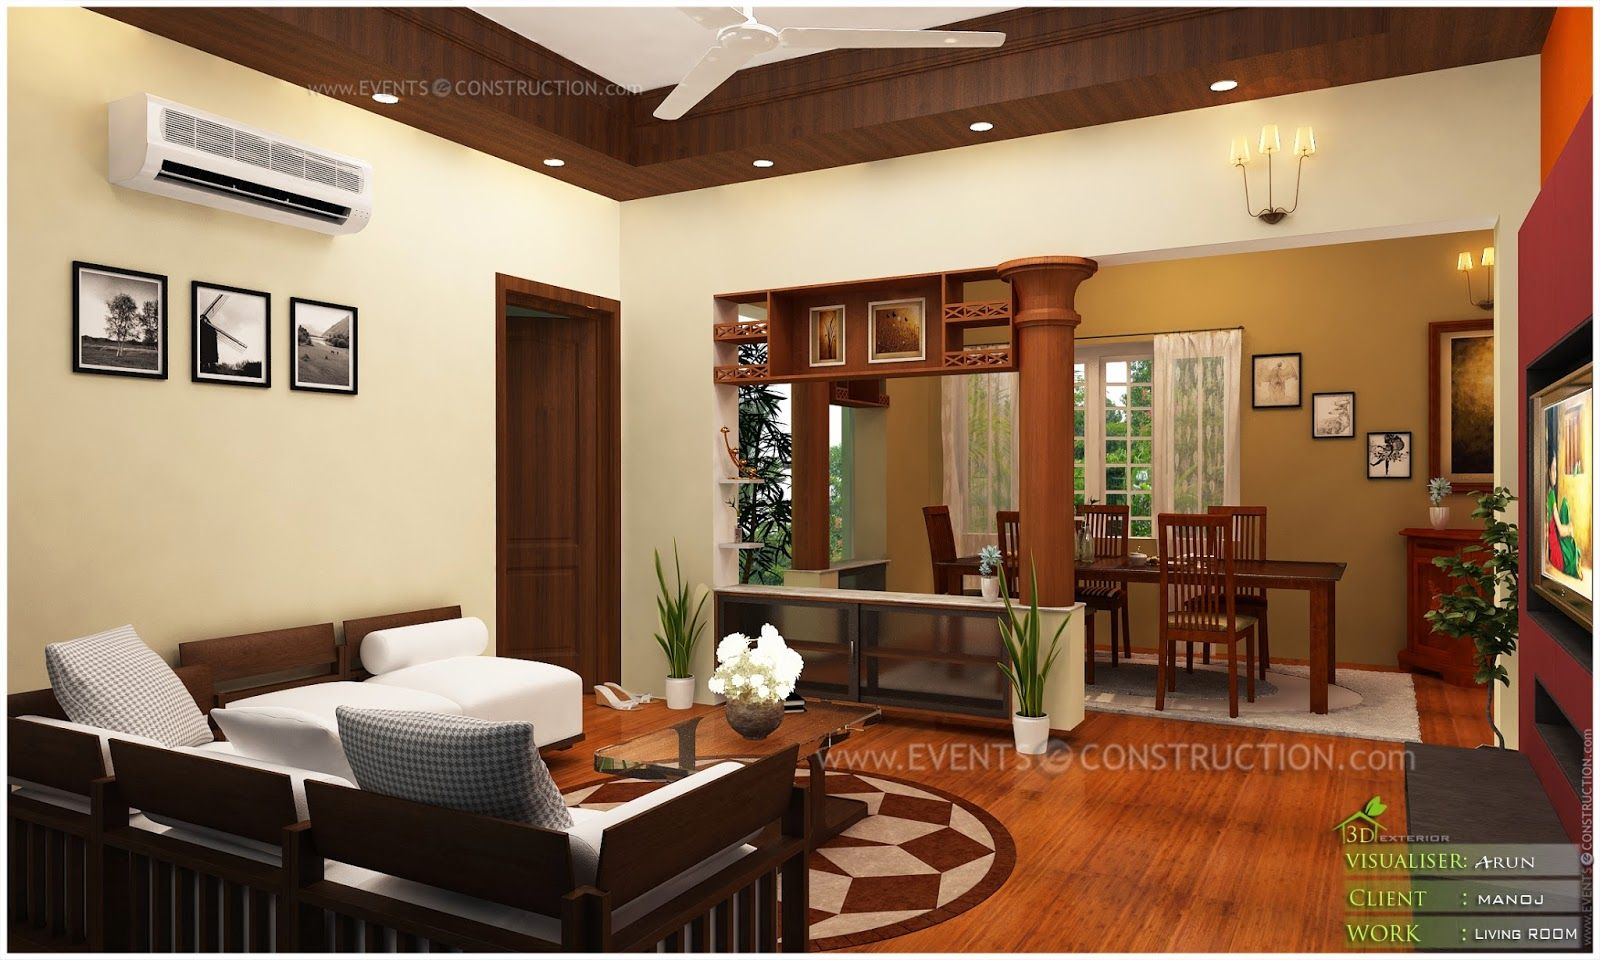 Images of western style homes in kerala google search for Kerala house living room interior design